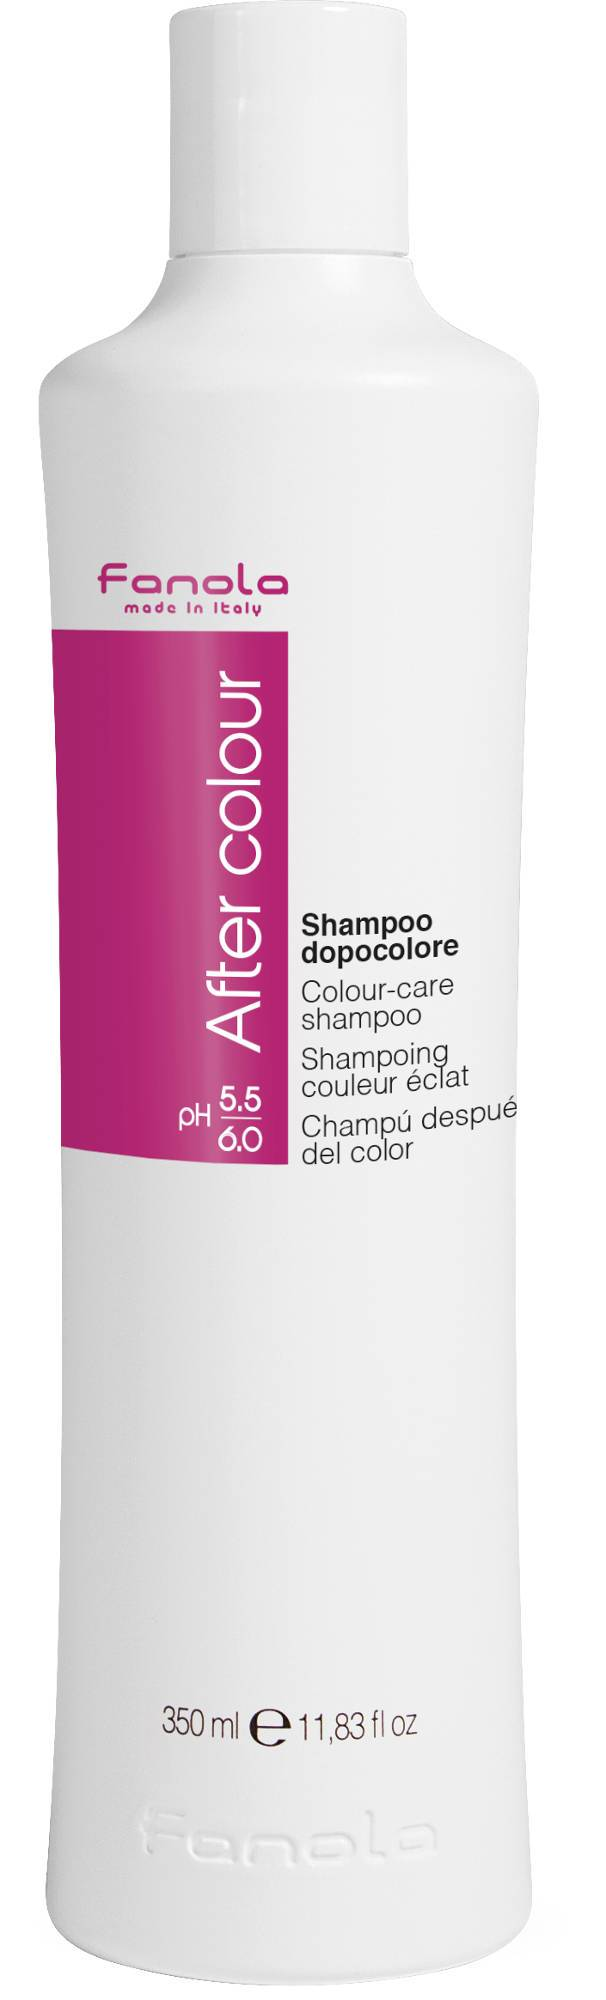 Fanola After Colour Care Shampoo Hair Shampoos Fanola 350 mL